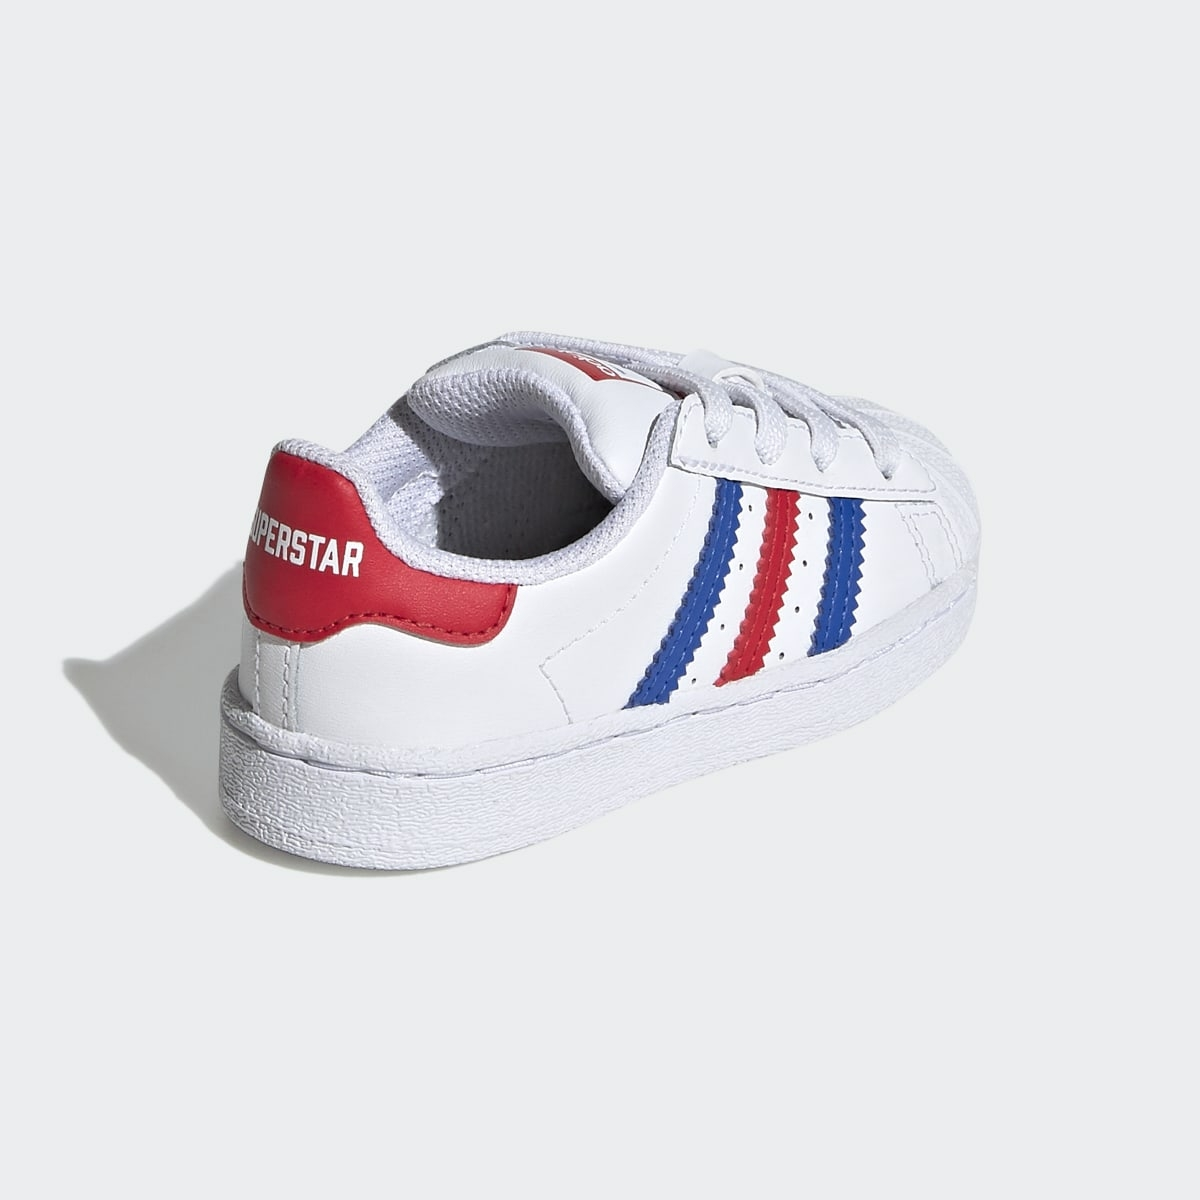 adidas Originals Superstar Schuh in bunt FV3685 | everysize